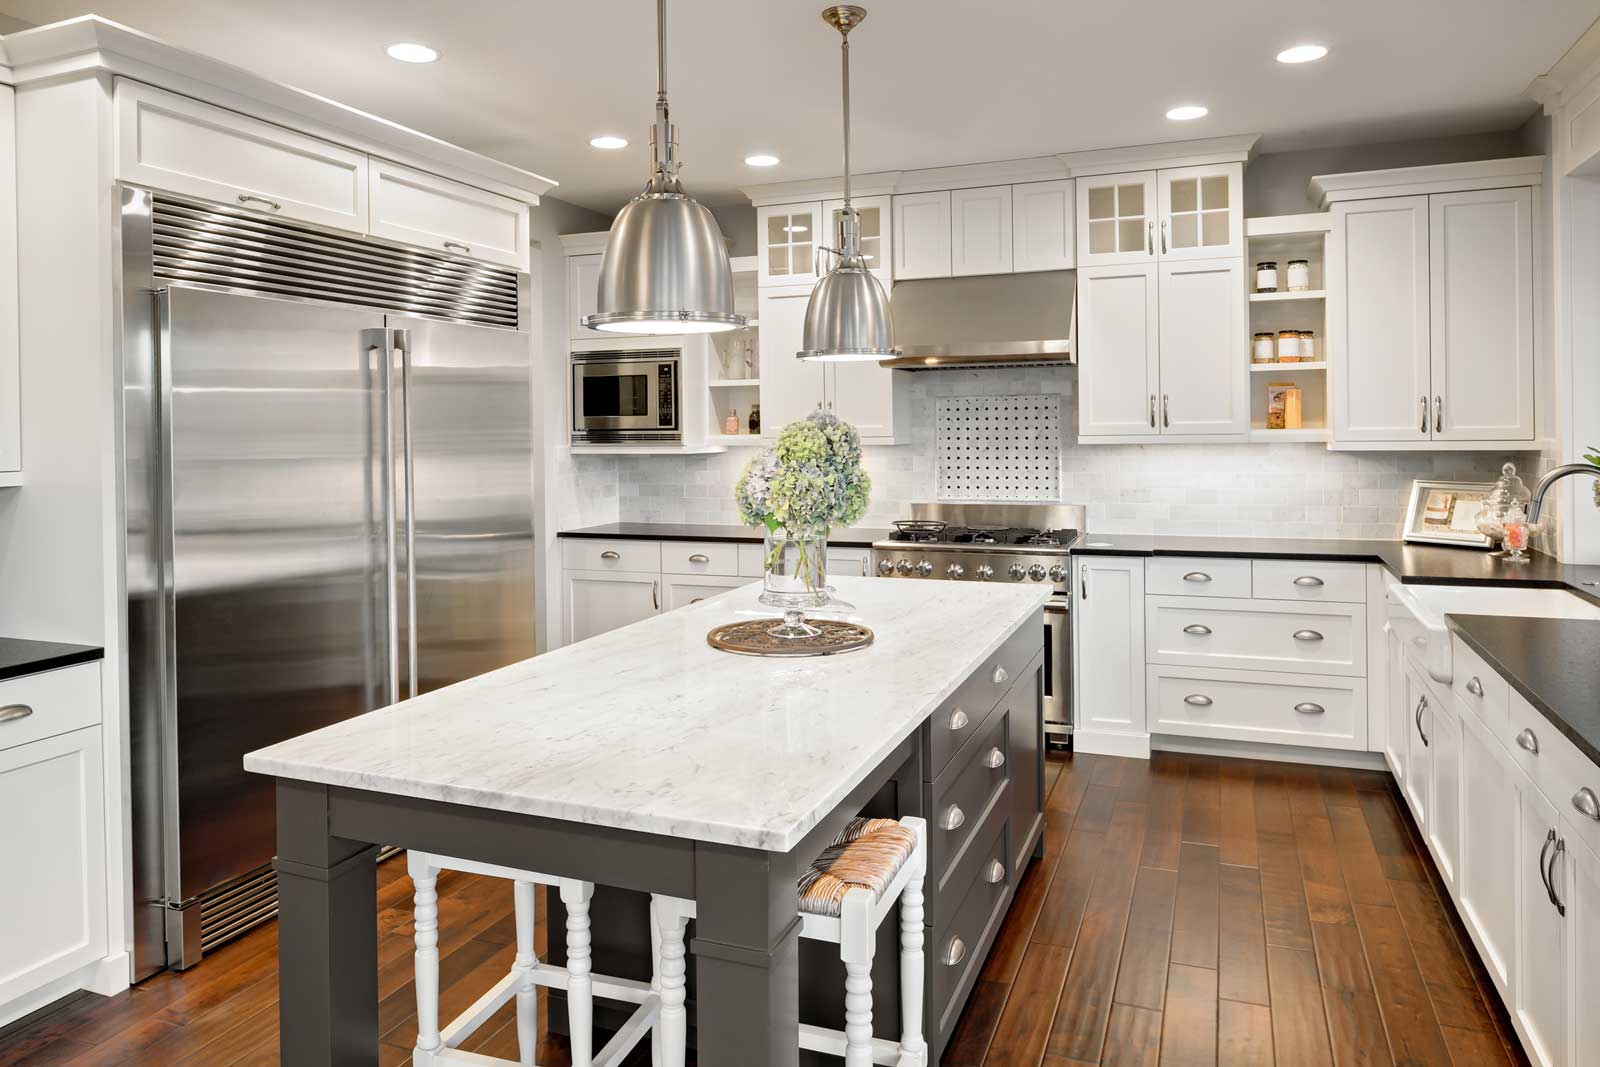 kitchen & bath home depot cabinets reviews bulkley valley centre gallery